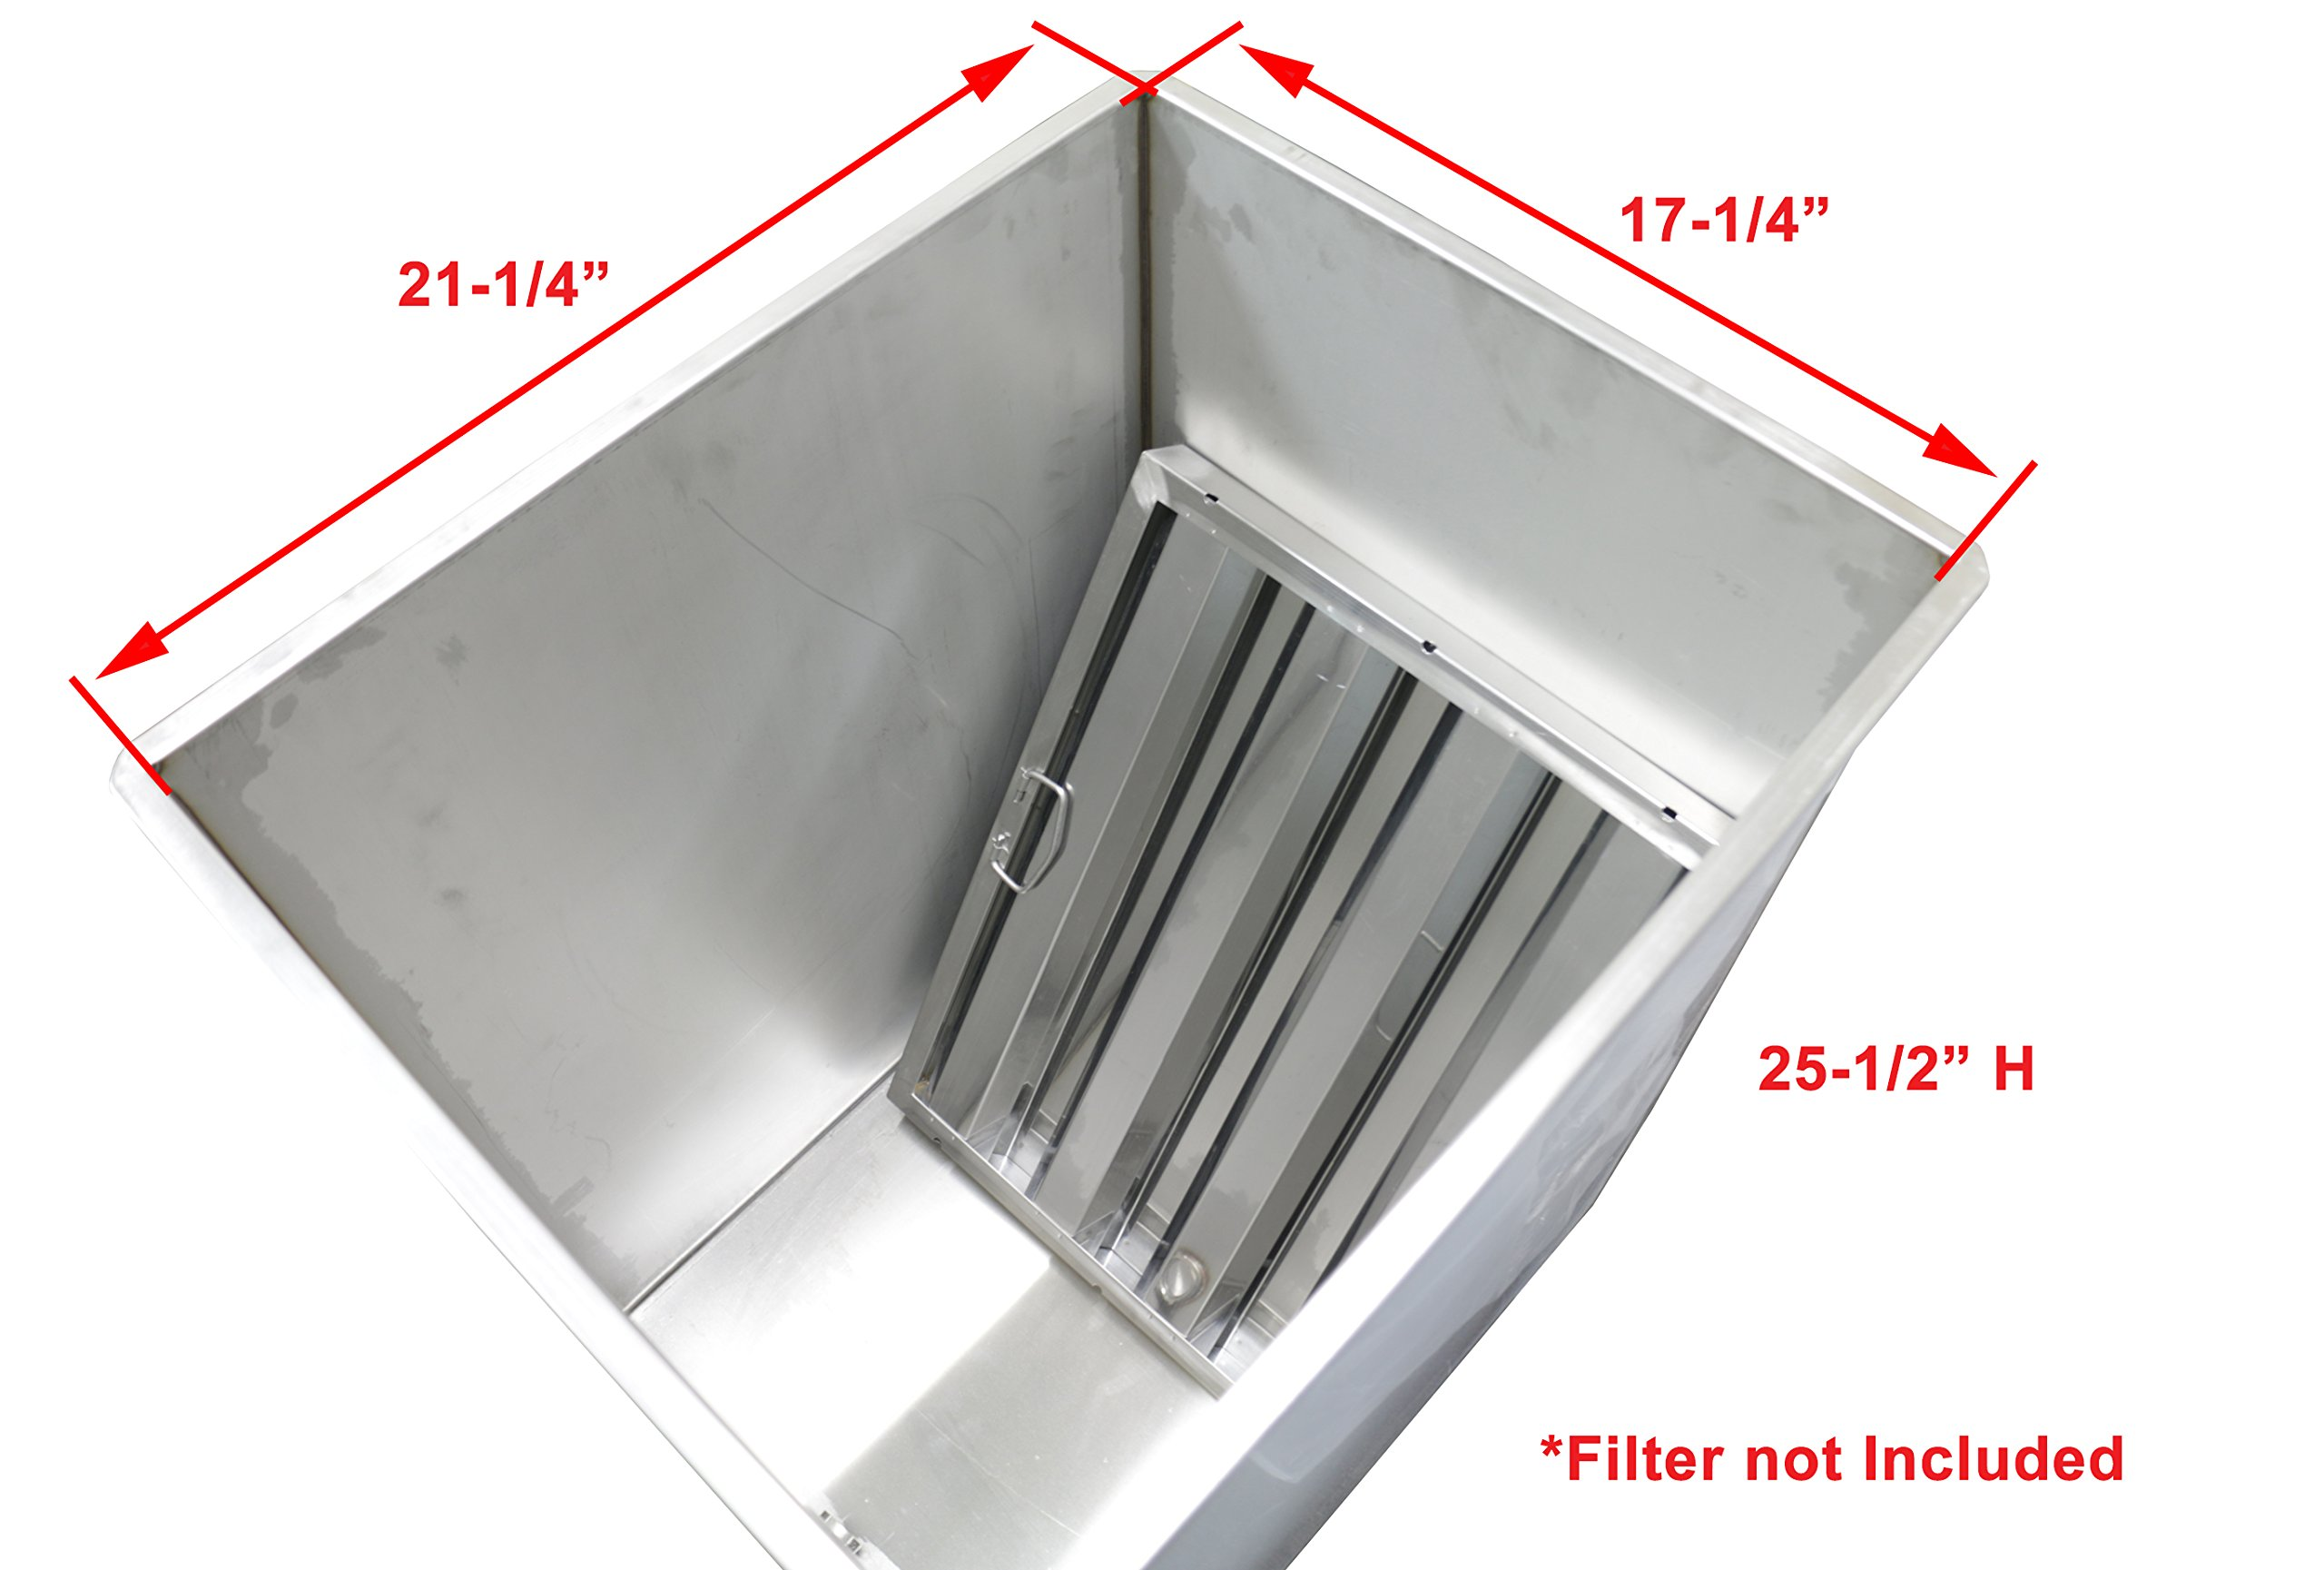 FF-Tank Stainless Steel Restaurant Soak Clean Grease Hood Filter Tank with Lid by EquipmentBlvd